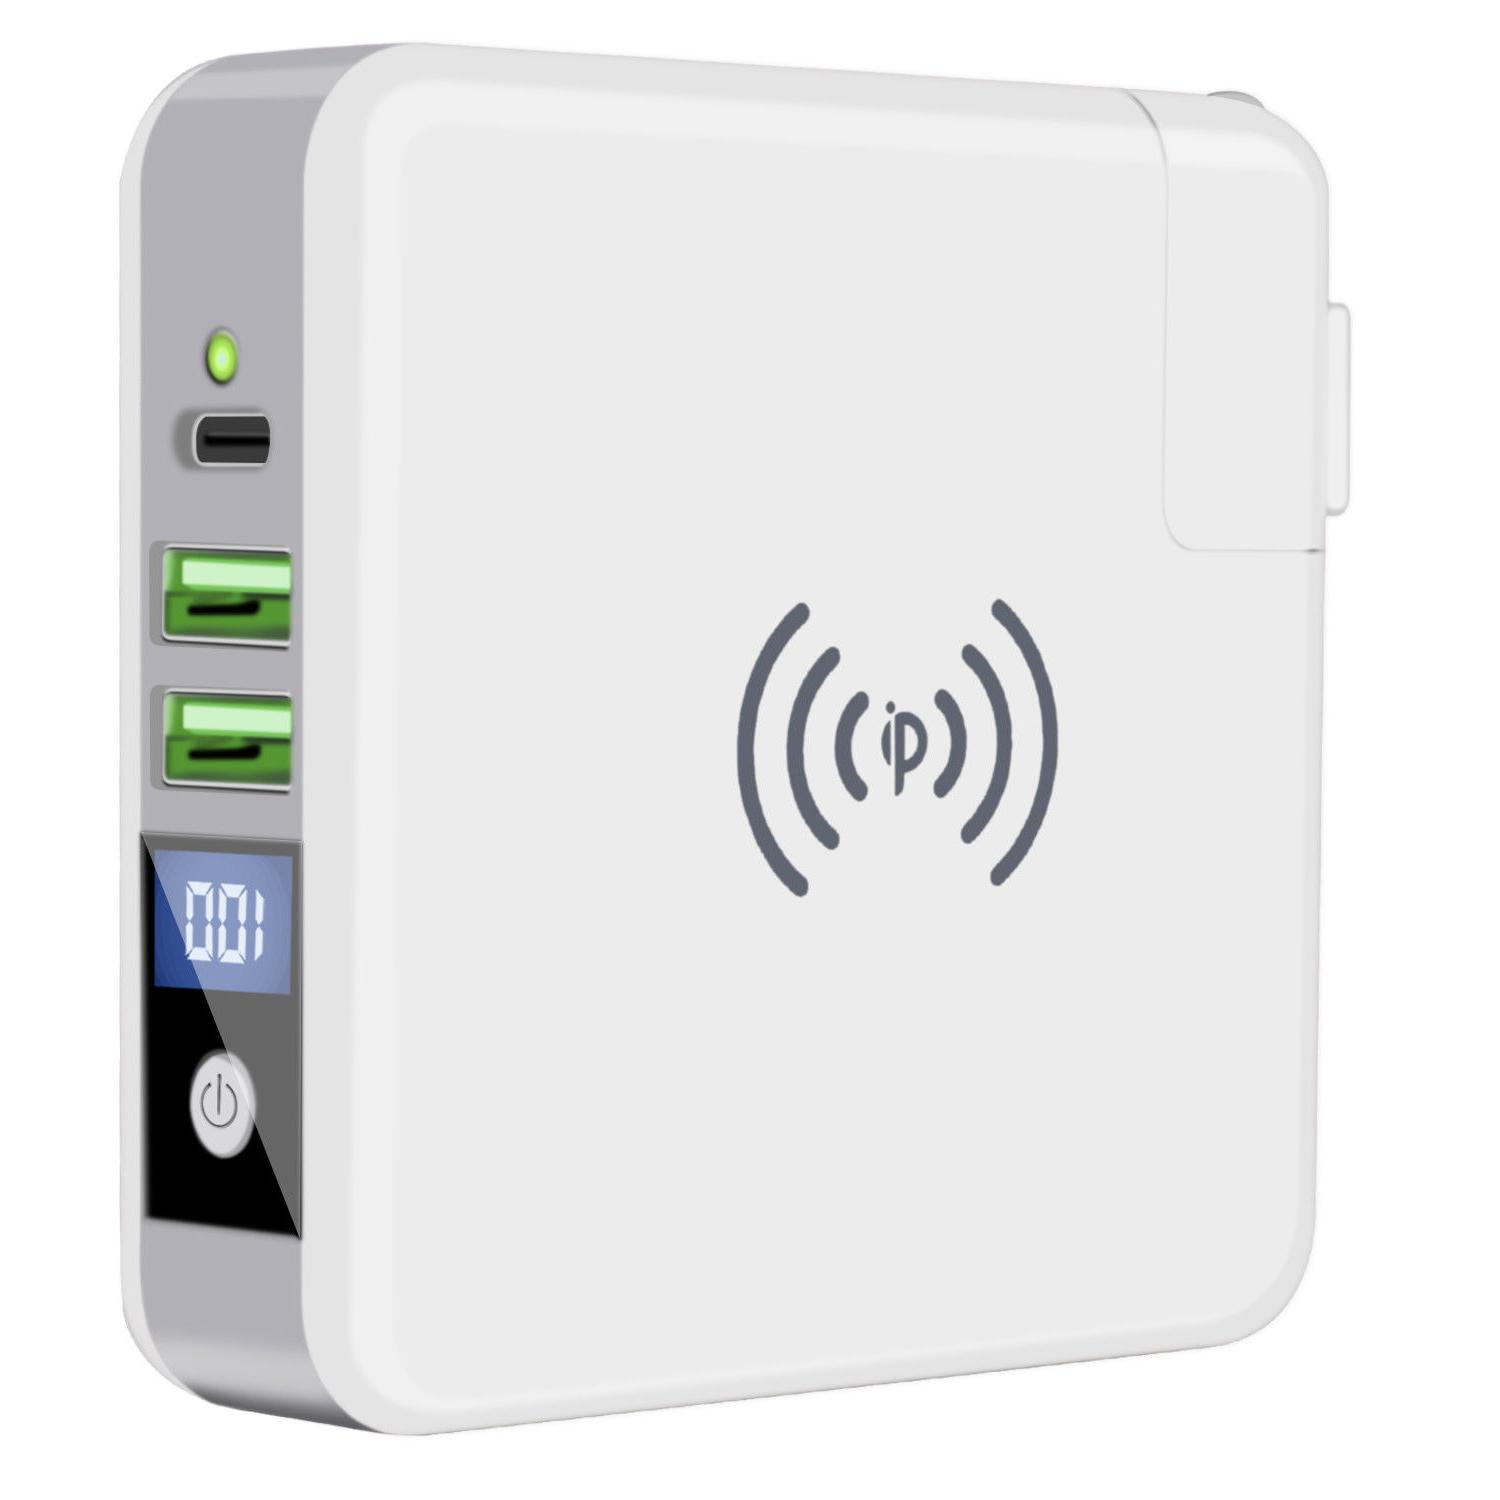 qi wireless fast charging power bank portable